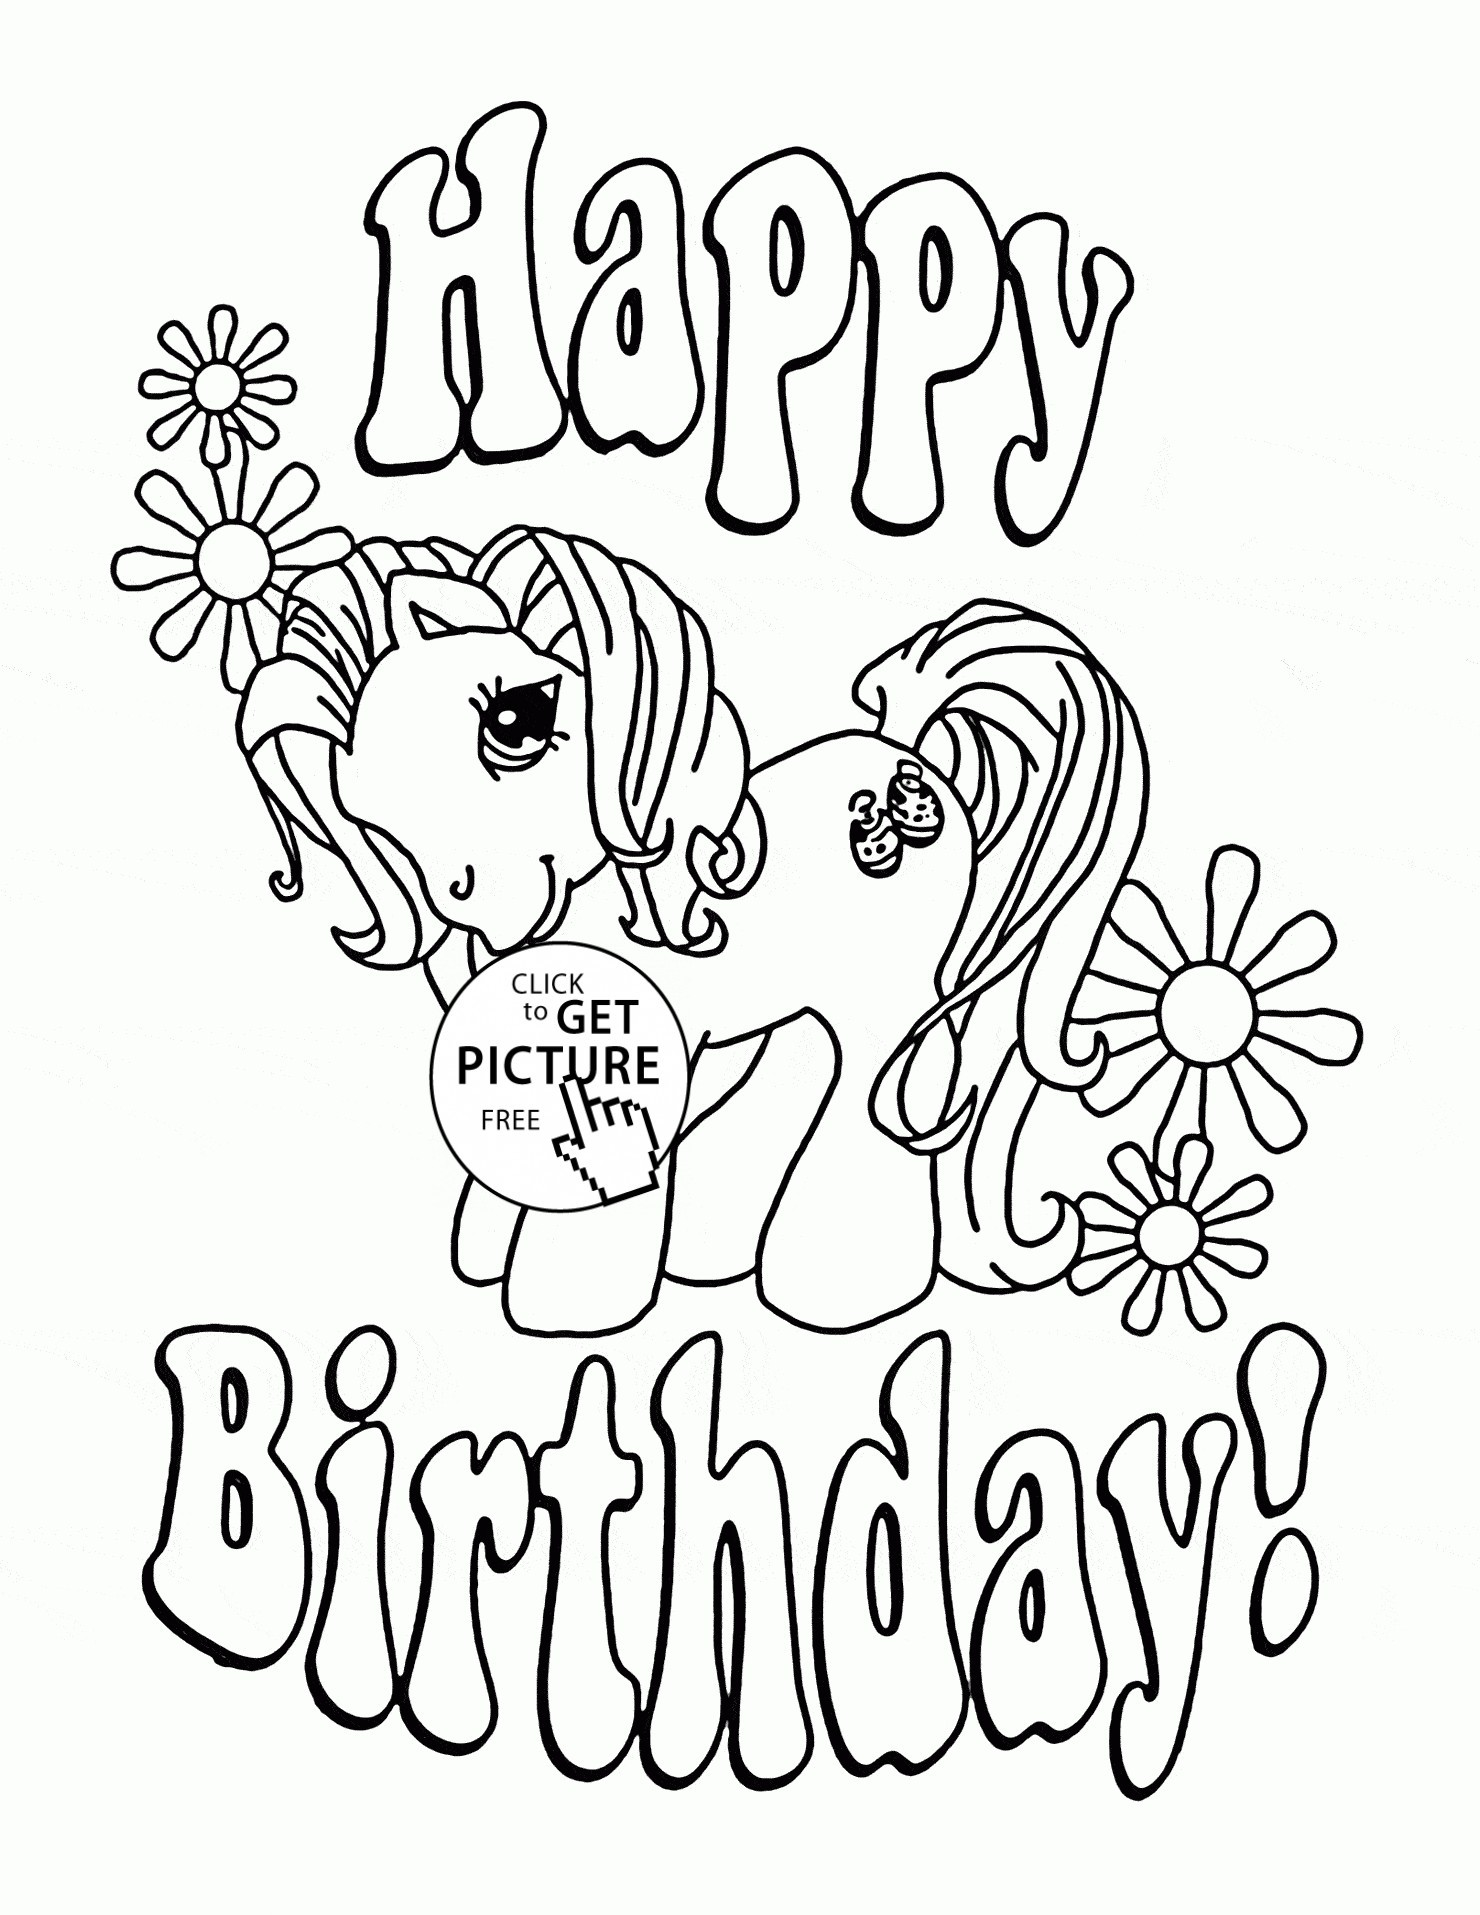 happy birthday coloring pictures ; birthday-coloring-book-inspirationa-cute-happy-birthday-coloring-pages-printable-of-birthday-coloring-book